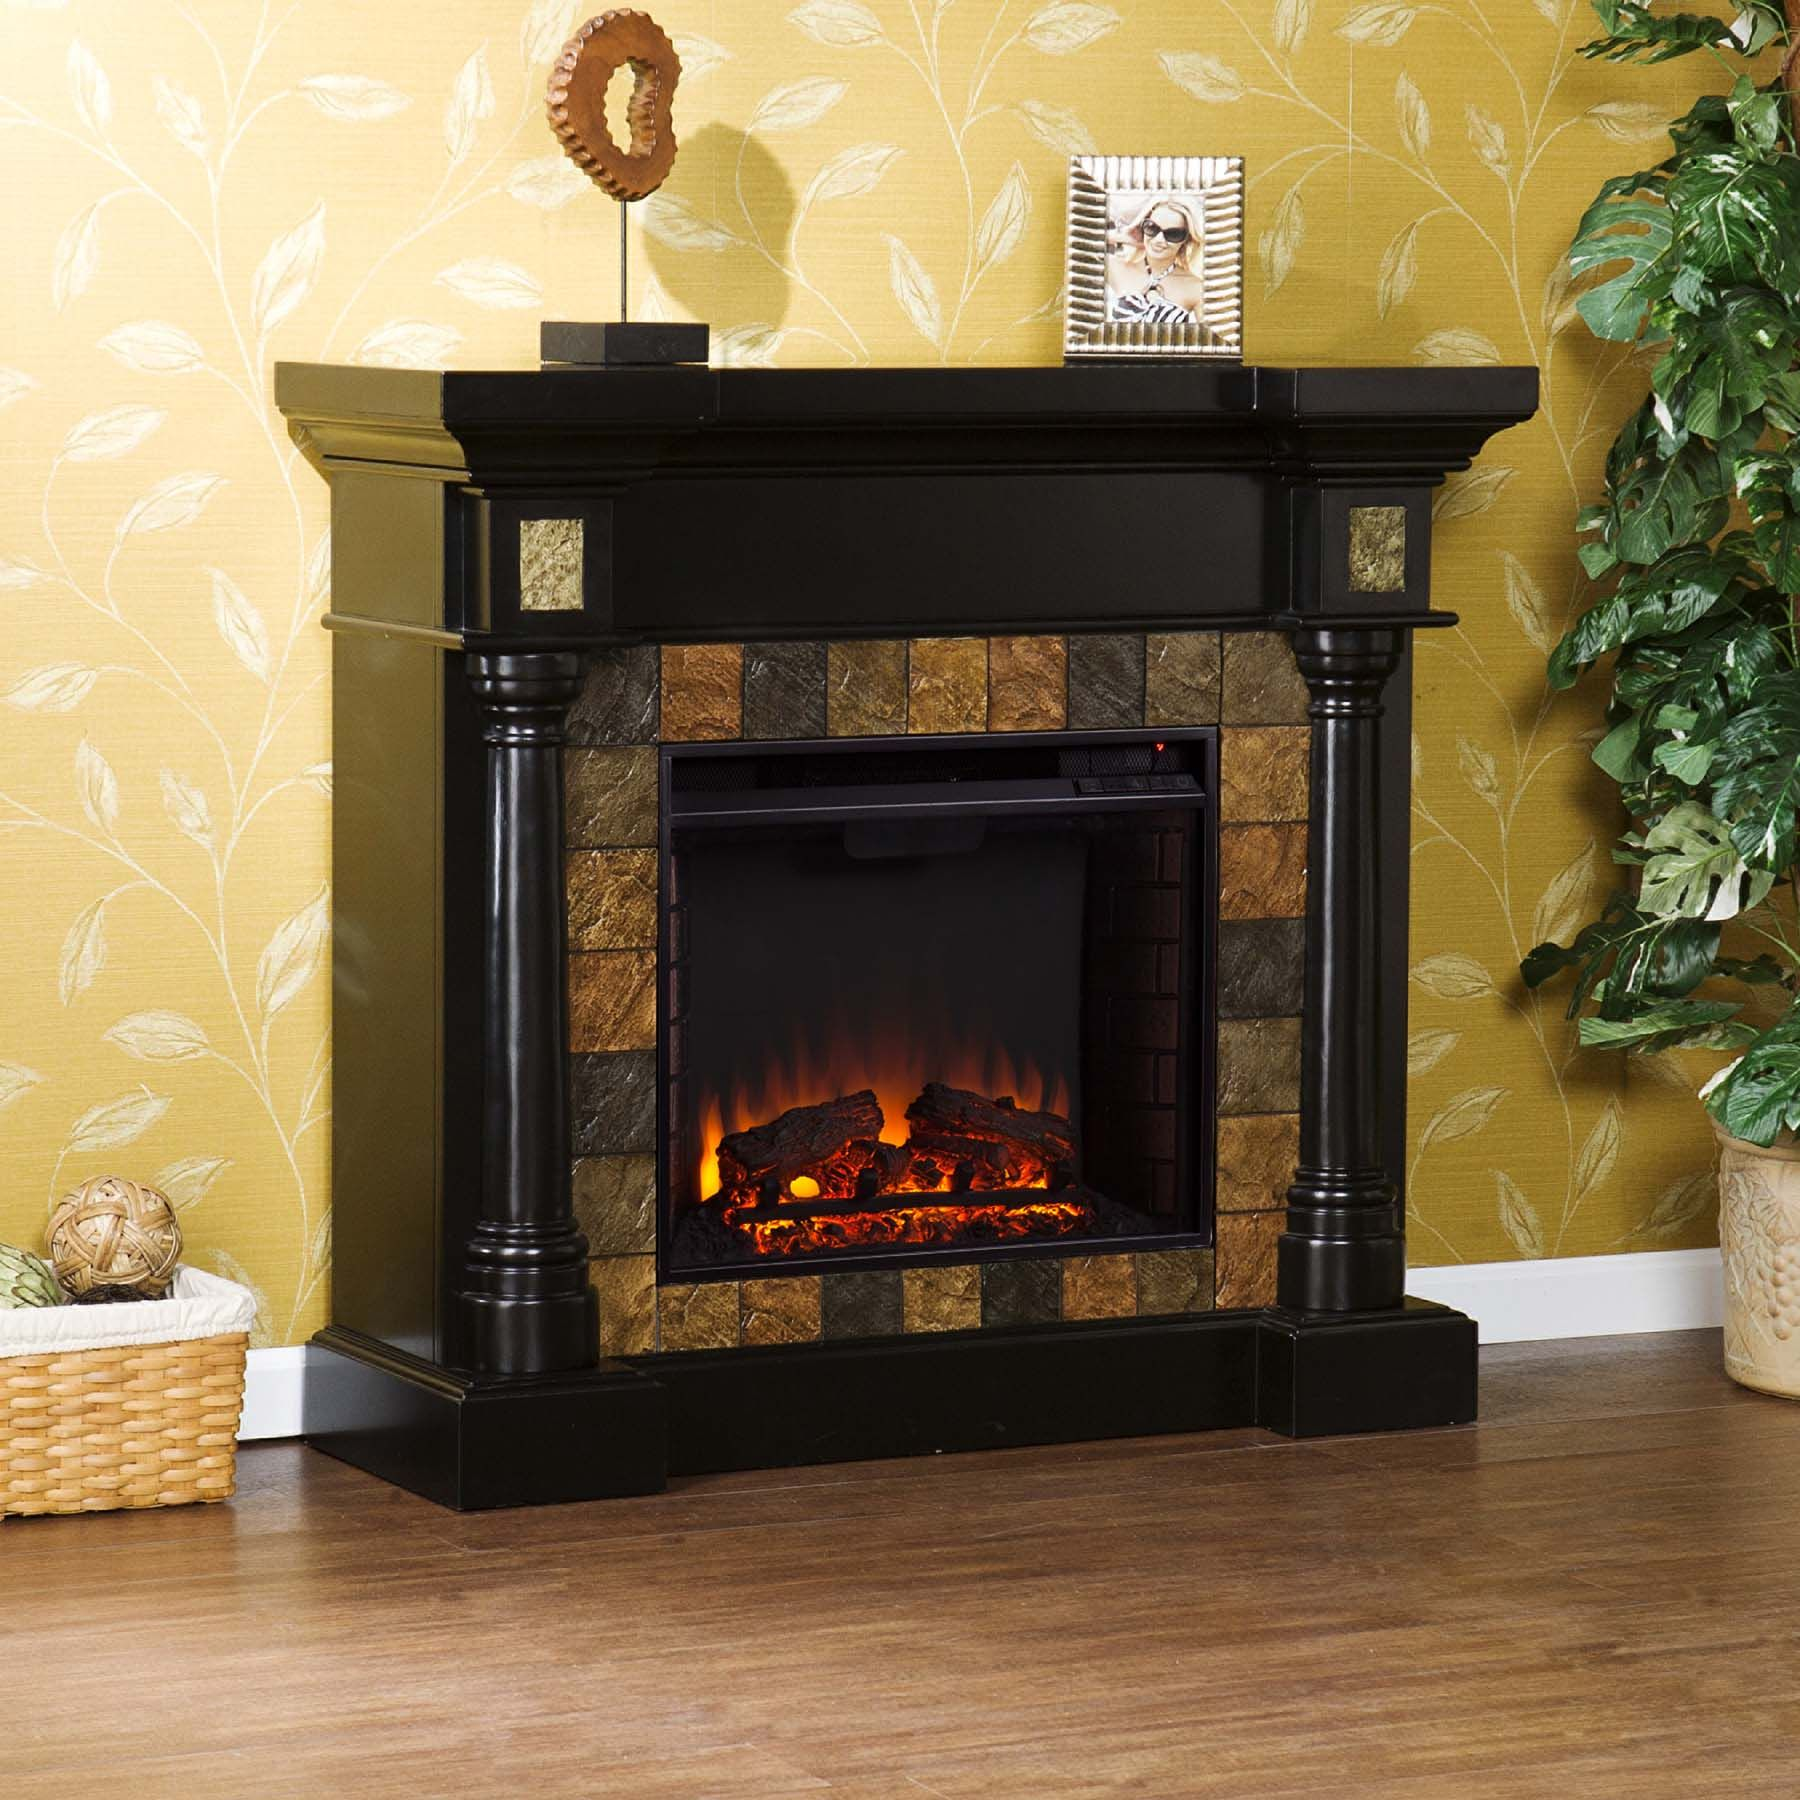 Elegantly Crafted Rustic Electric Fireplaces Electric Fireplace Black Electric Fireplace Fireplace